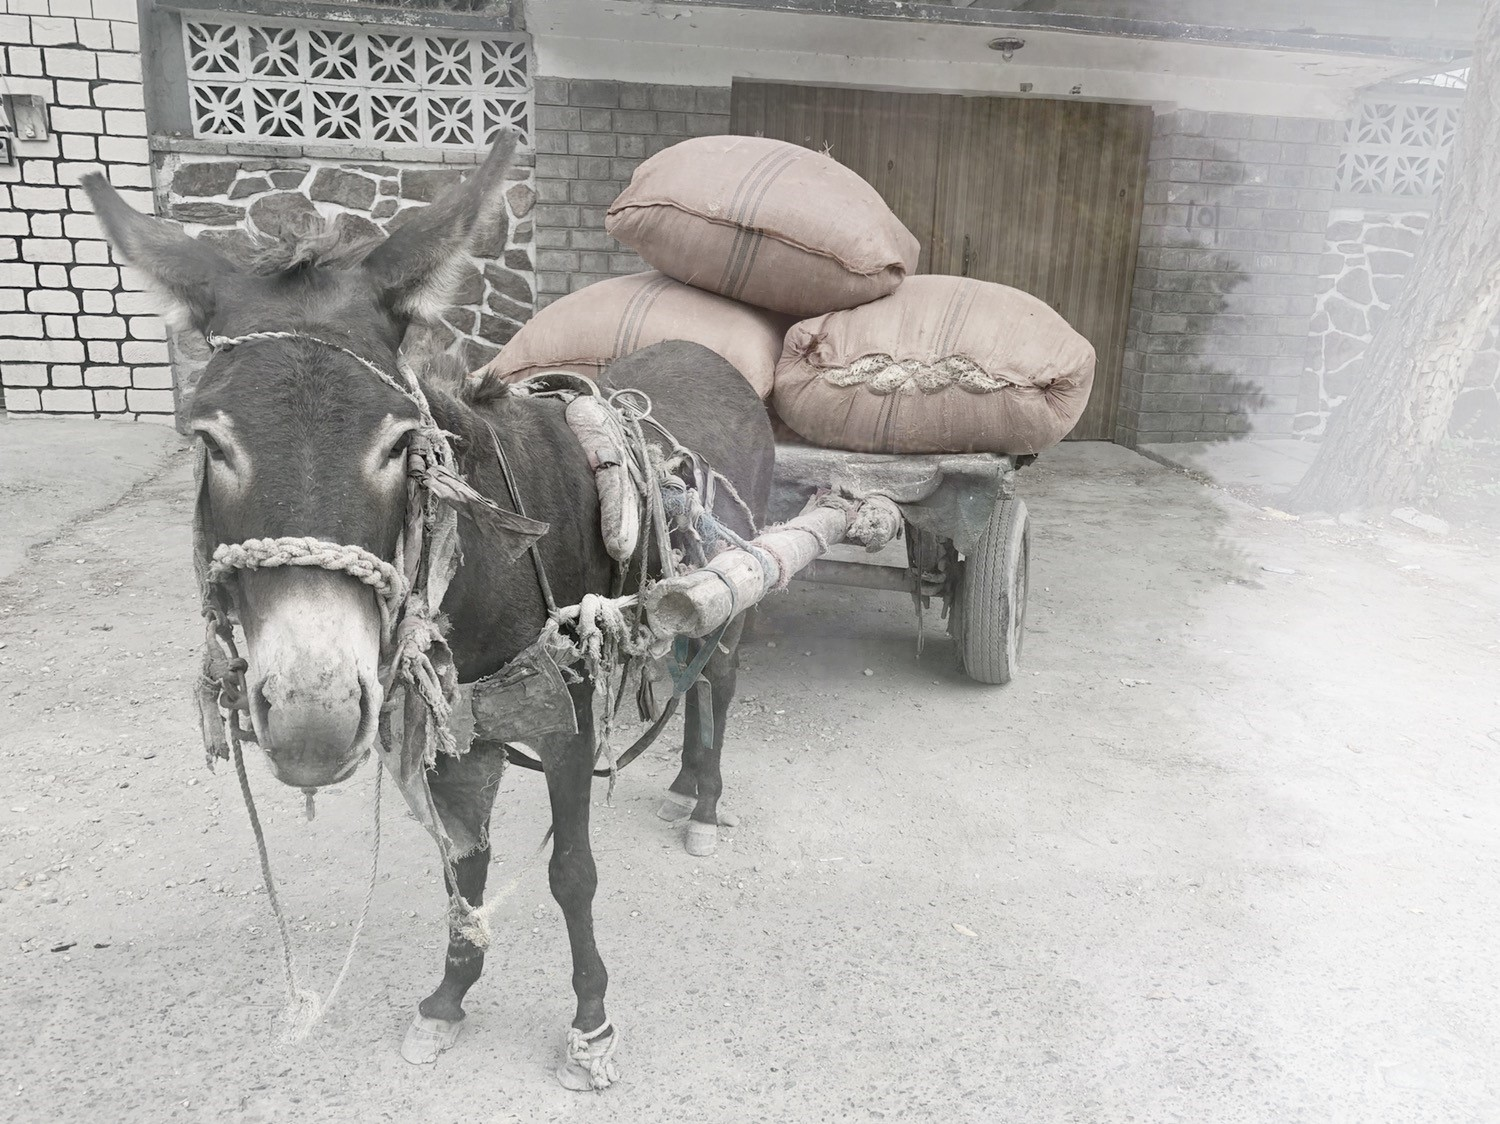 Will you help ease the pain and suffering of working donkeys in Afghanistan today?